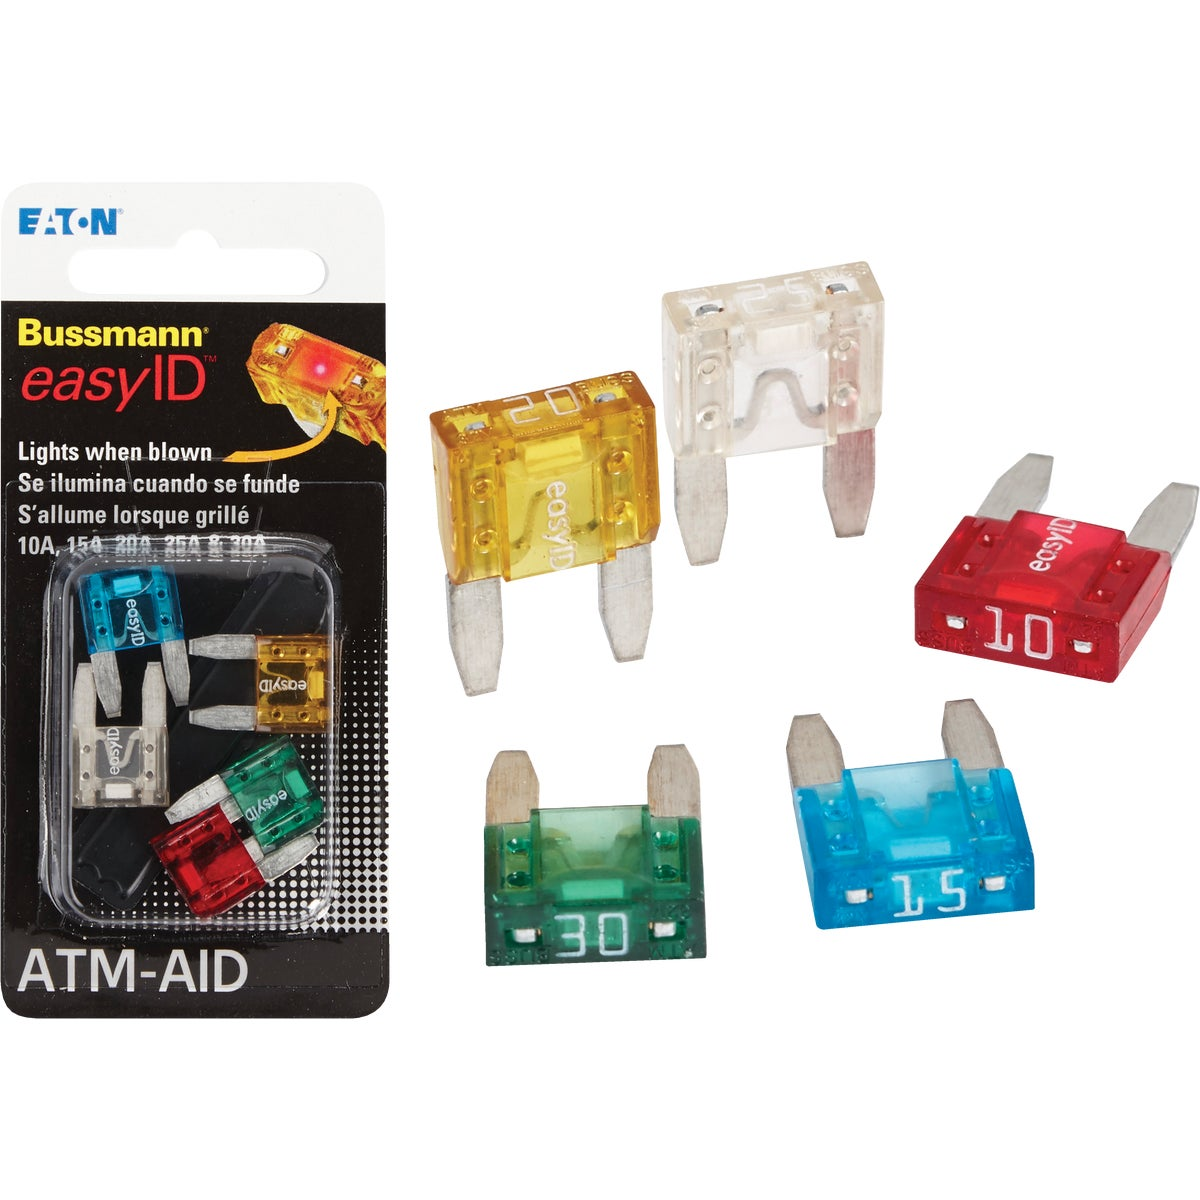 EASY ID FUSE ASSORTMENT - BP/ATM-AID by Bussmann Cooper